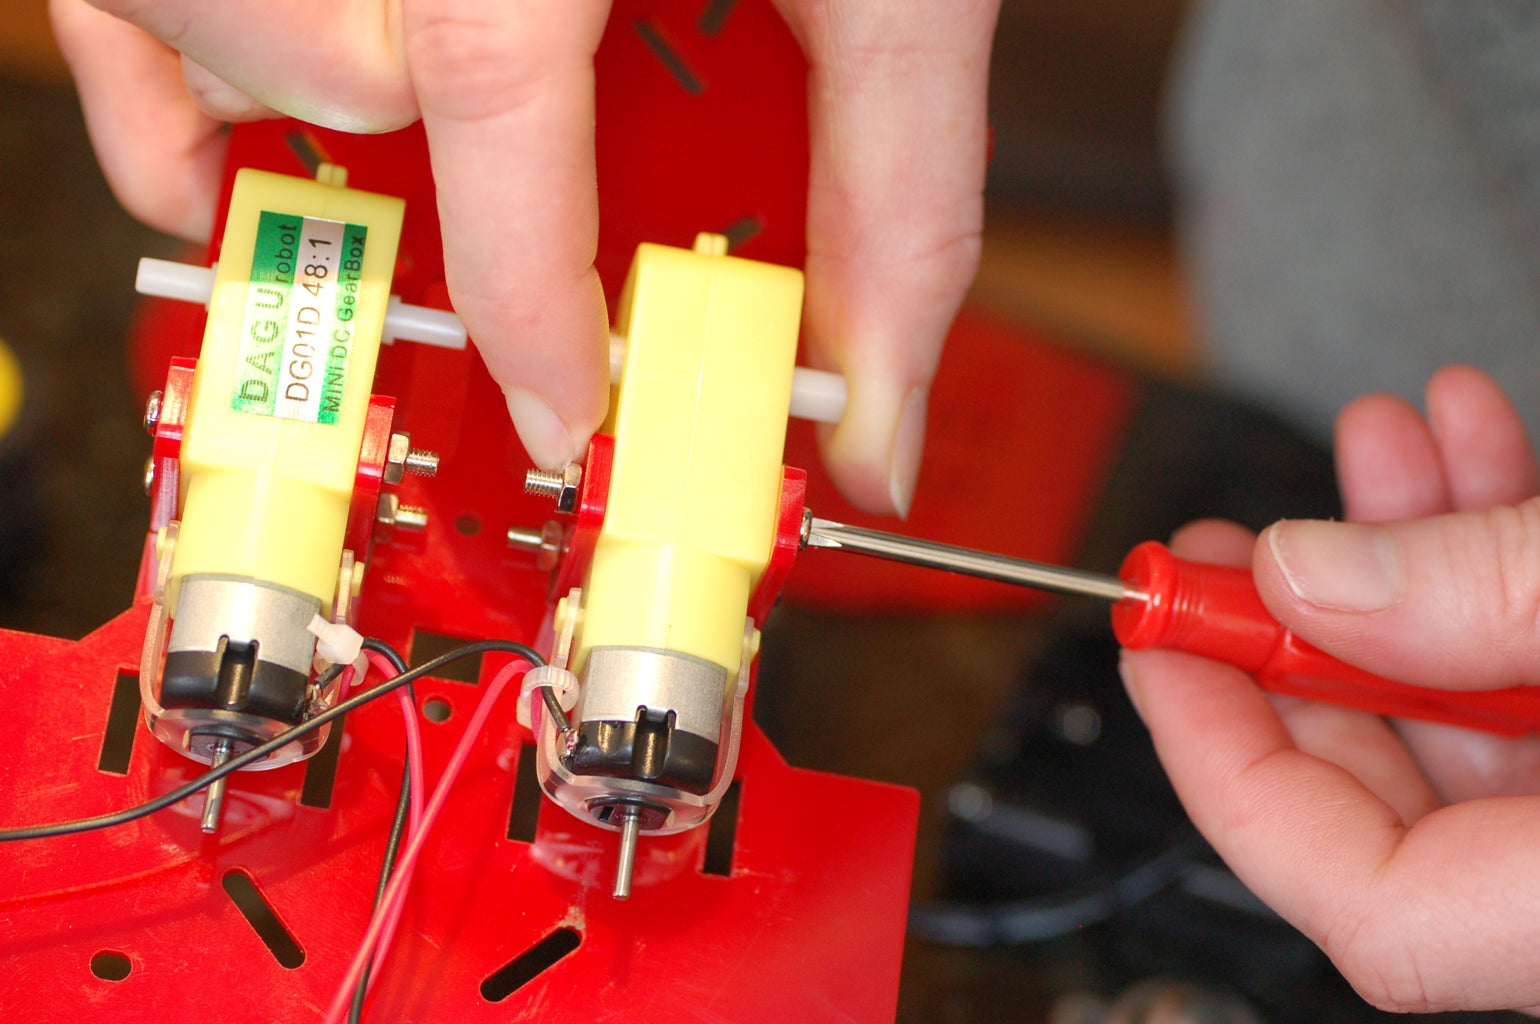 Attach the Motors to the Motor Holders